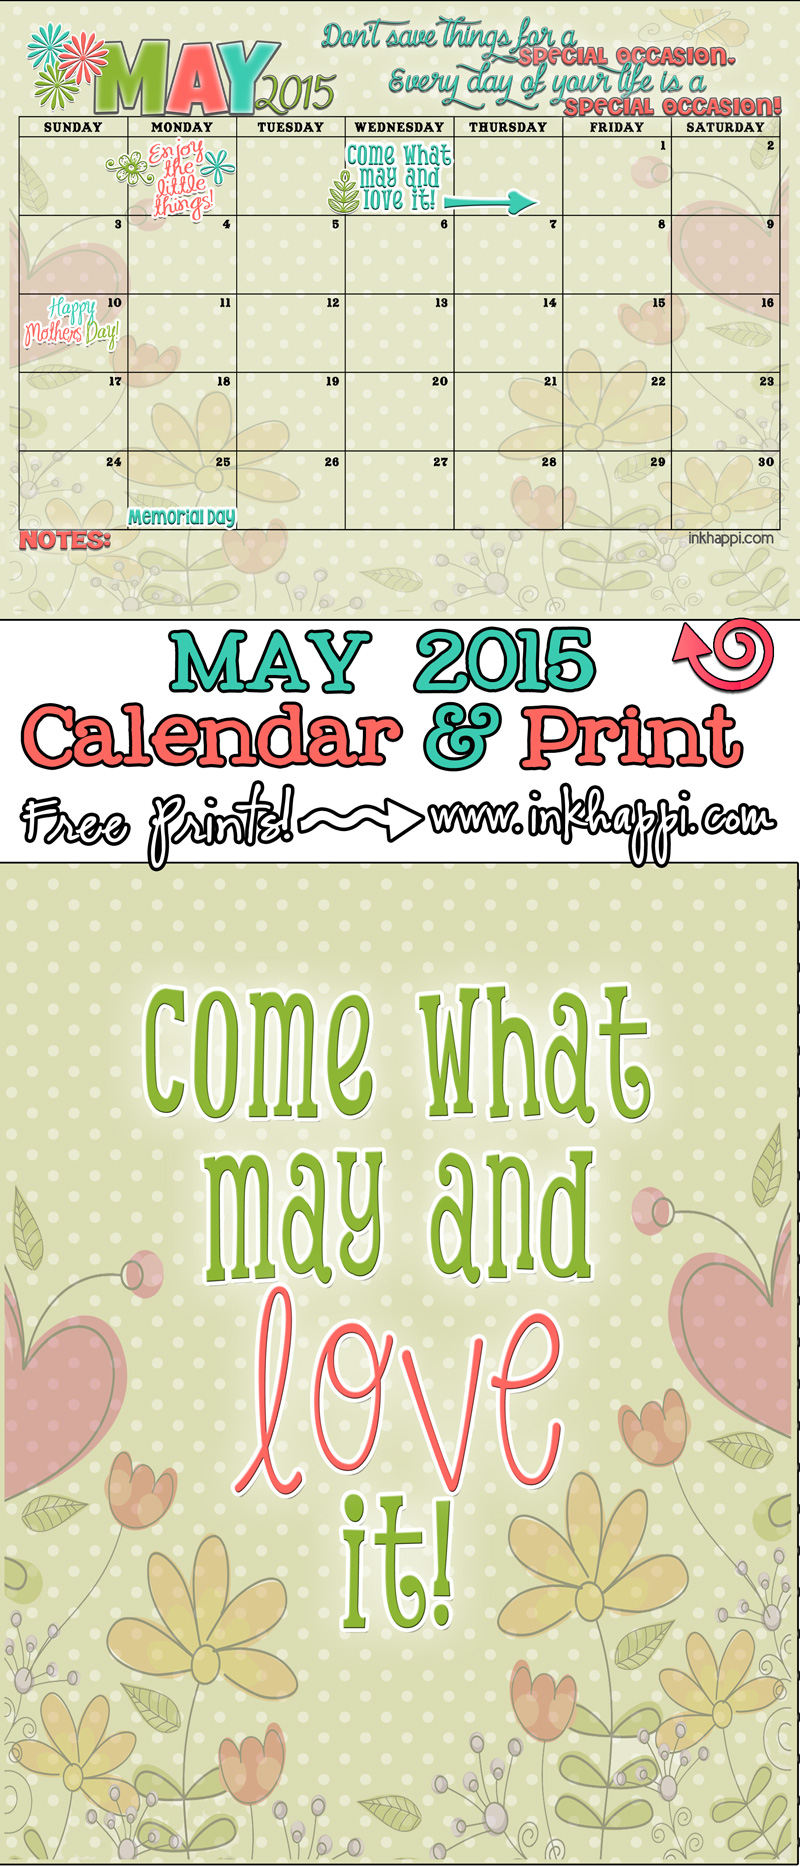 May 2015 Calendar …Come what may and love it!